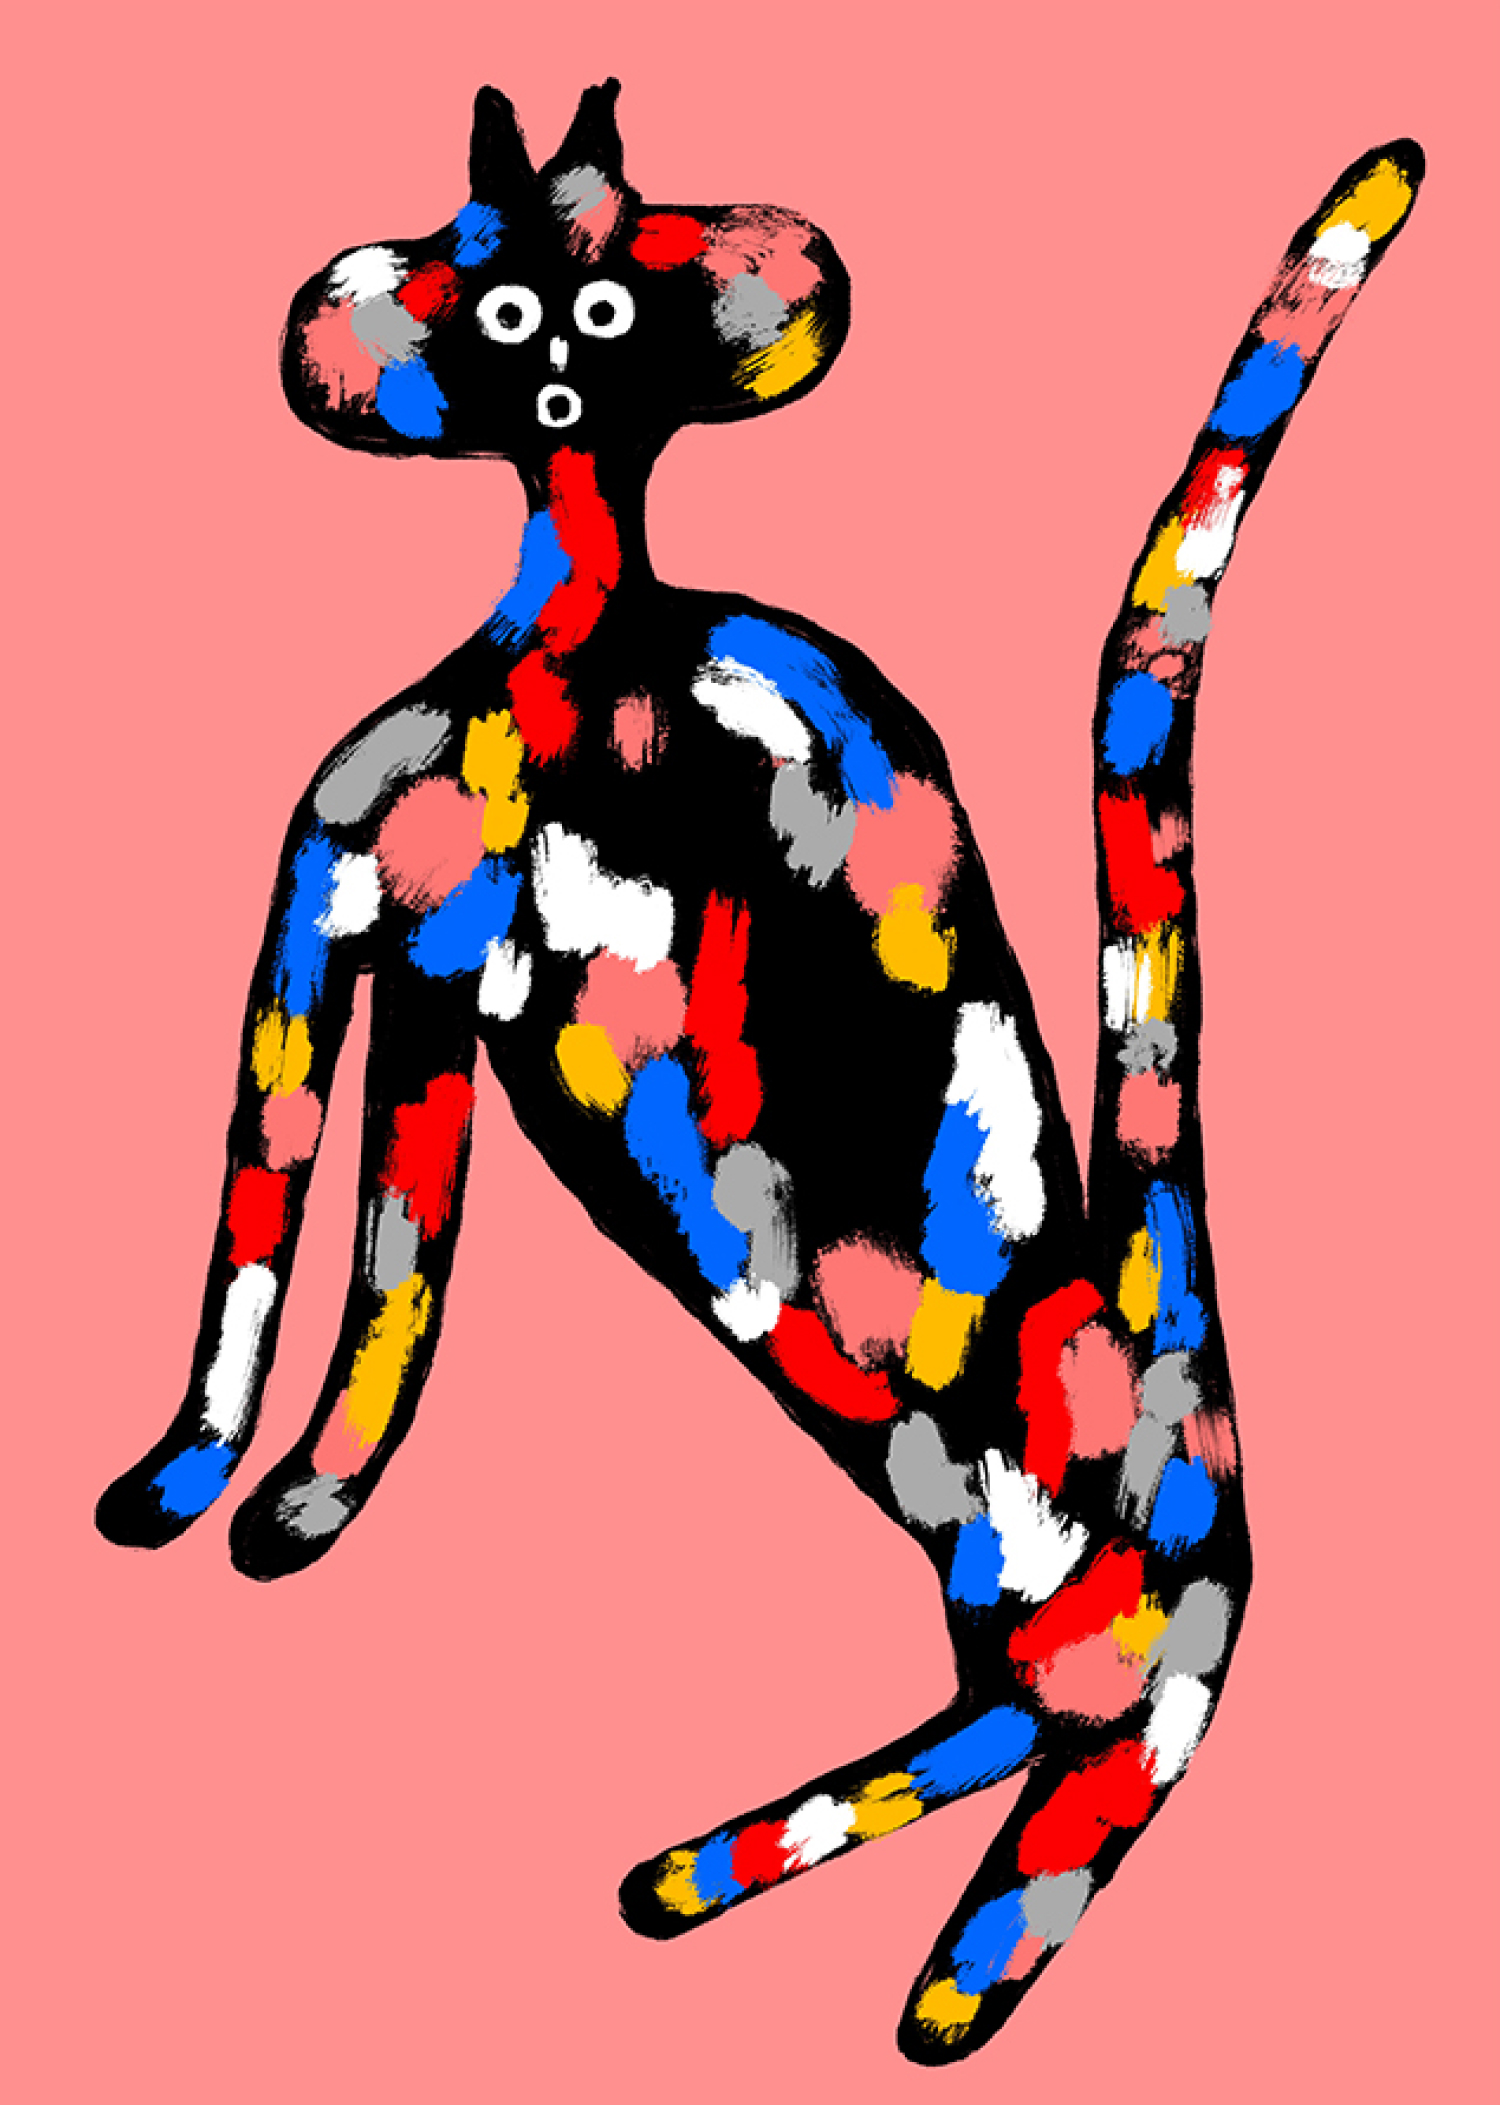 Sassy Cat 3, £40  —Good Day Club - Open Editions